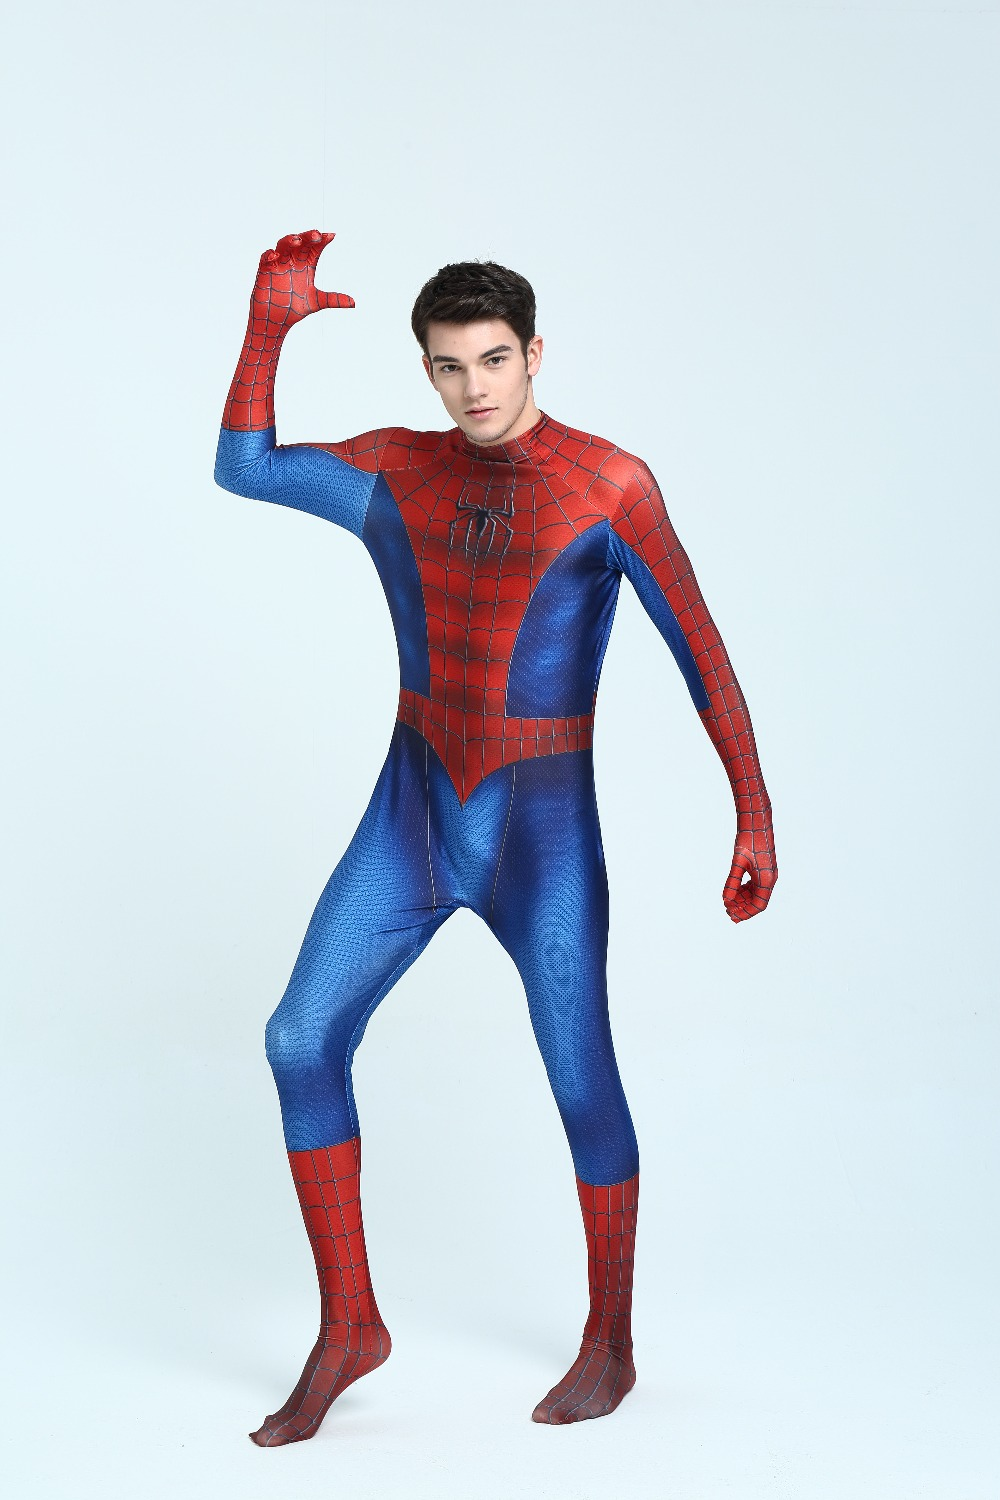 2017 NEW Spider man cosplay costume 3D printing Full body halloween props Spider-man Superhero Costume For Adult/Kids tights